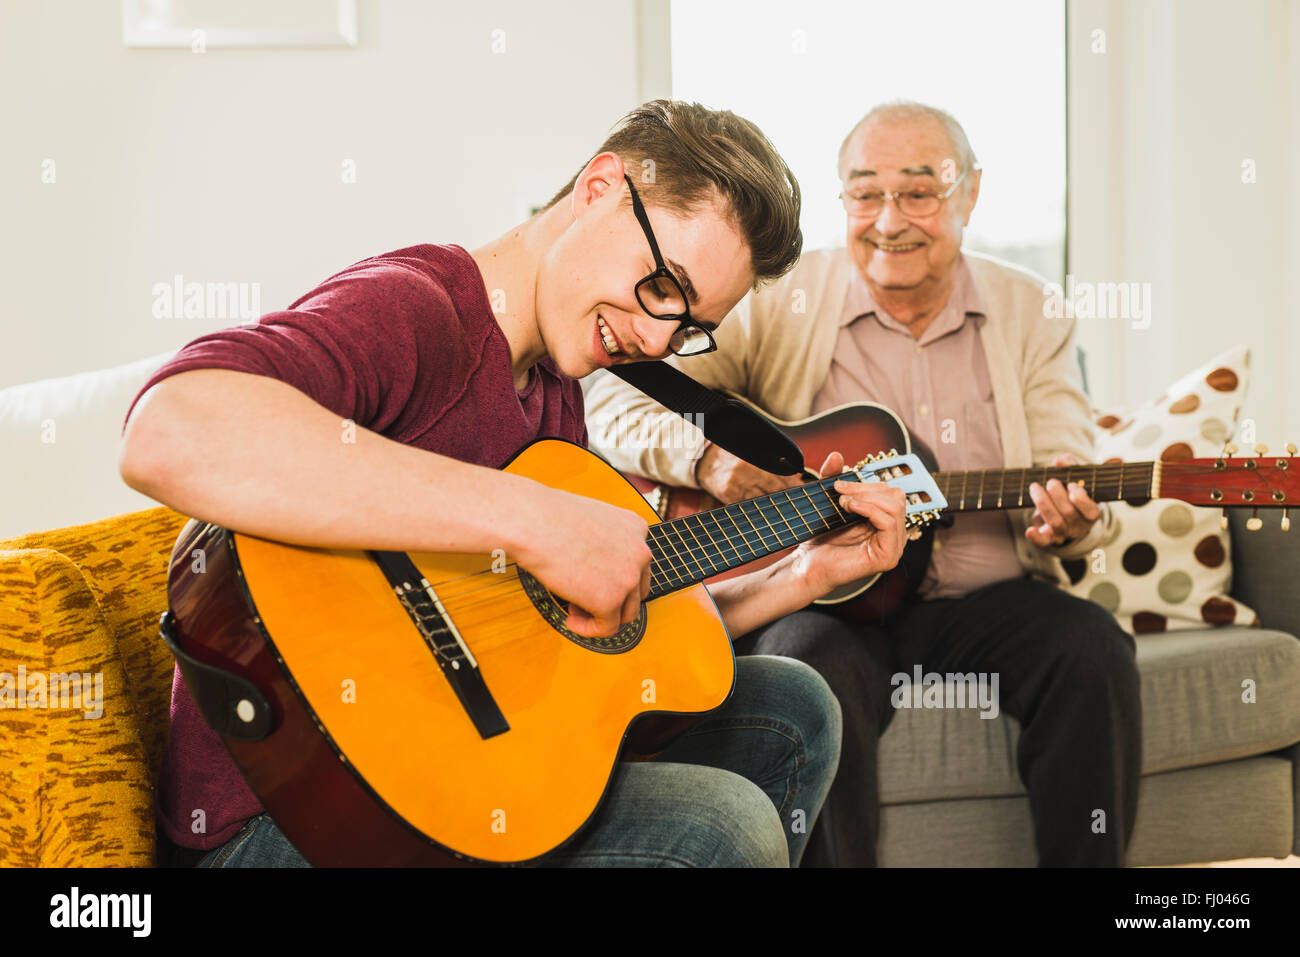 Grandfather and grandson playing guitar together - Stock Image